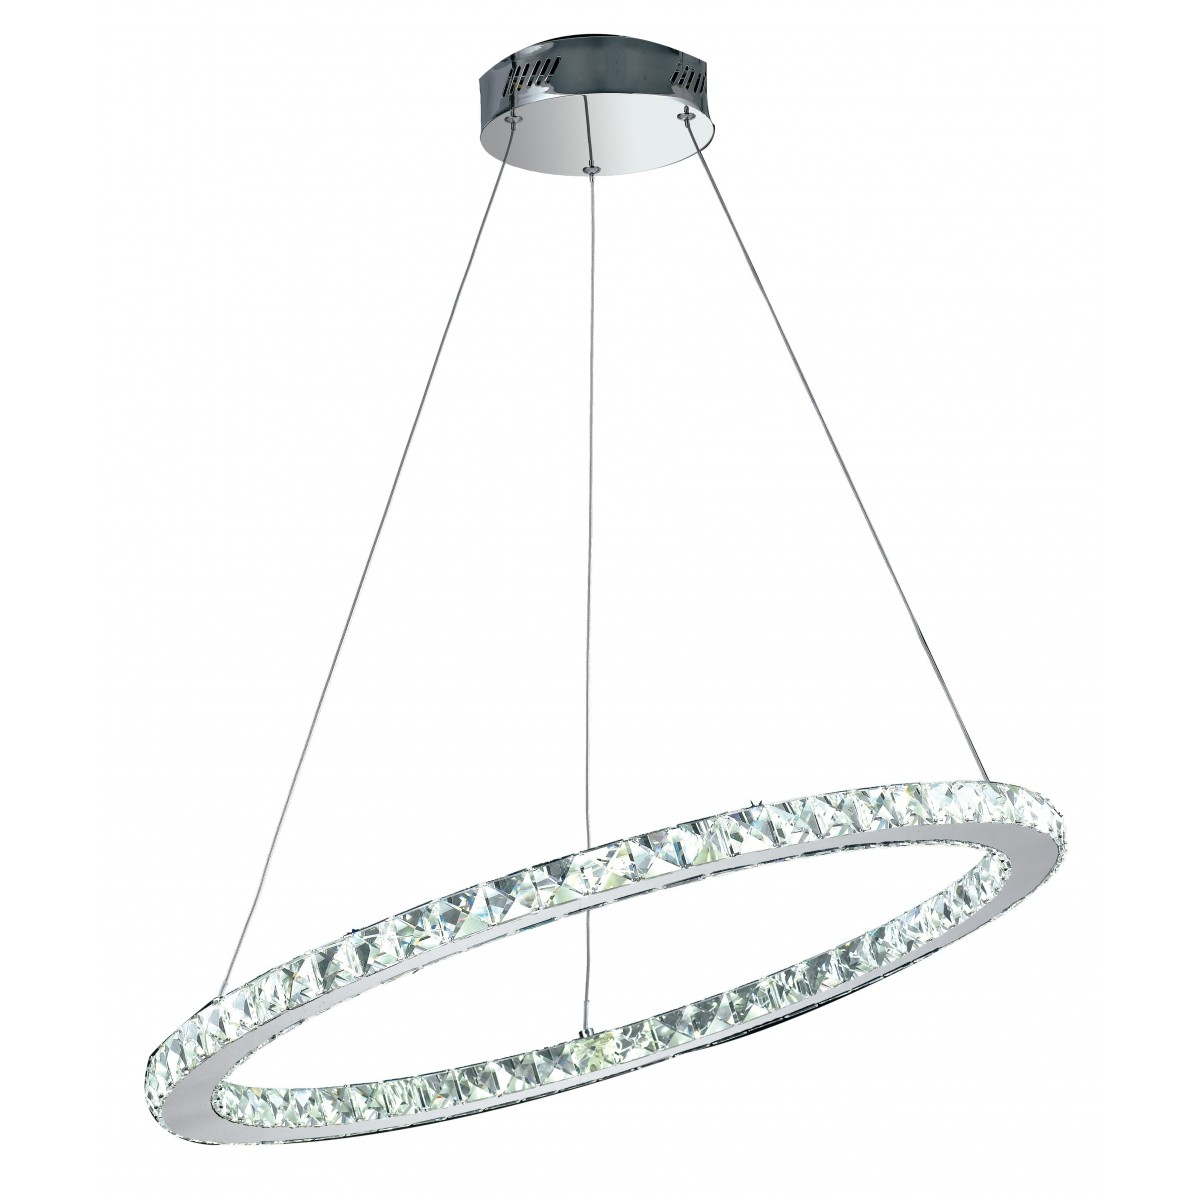 LED-MELODY / S70 - Suspension anneau oblique K9 Crystals Metal Chrome Led lustre 36 watts Natural Light